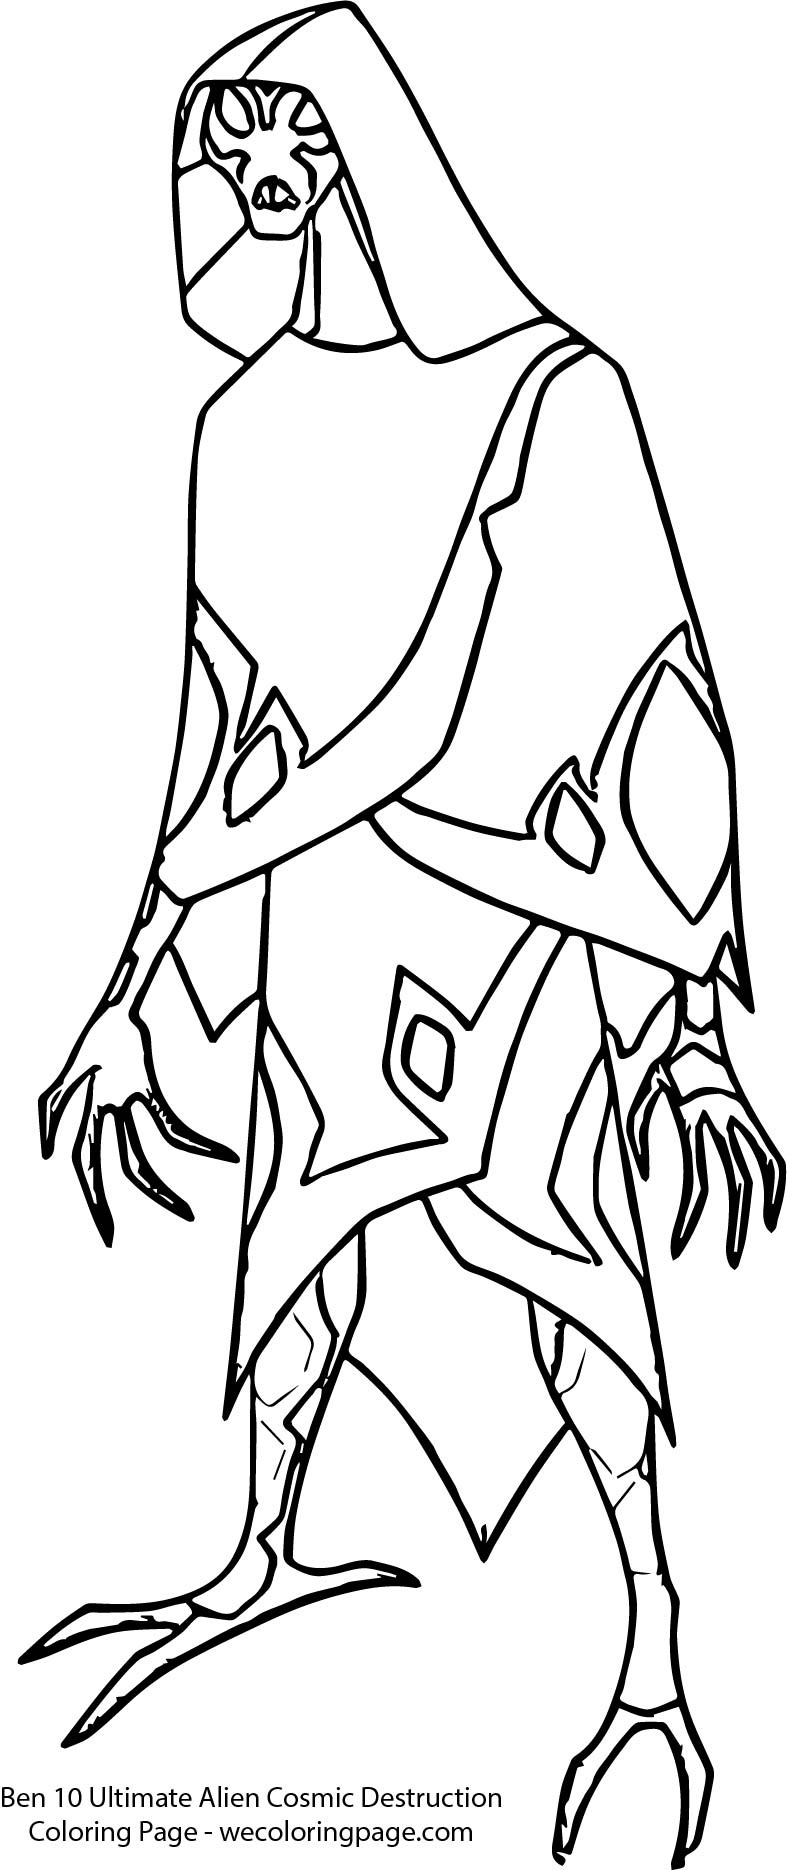 Ben 10 Ultimate Alien Cosmic Destruction Coloring Page